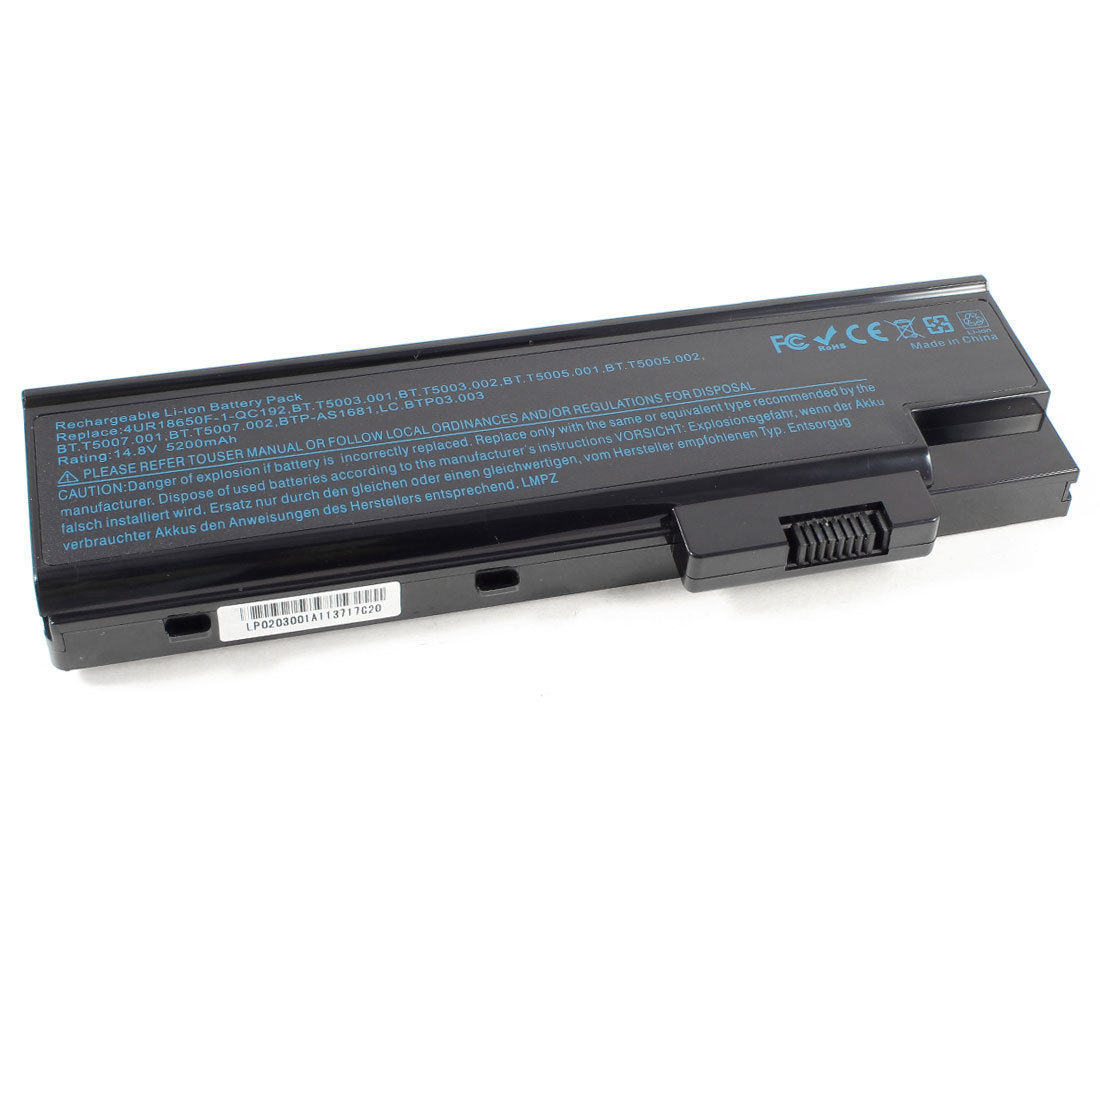 Acer 1.11v 4400mah TM4000 Battery